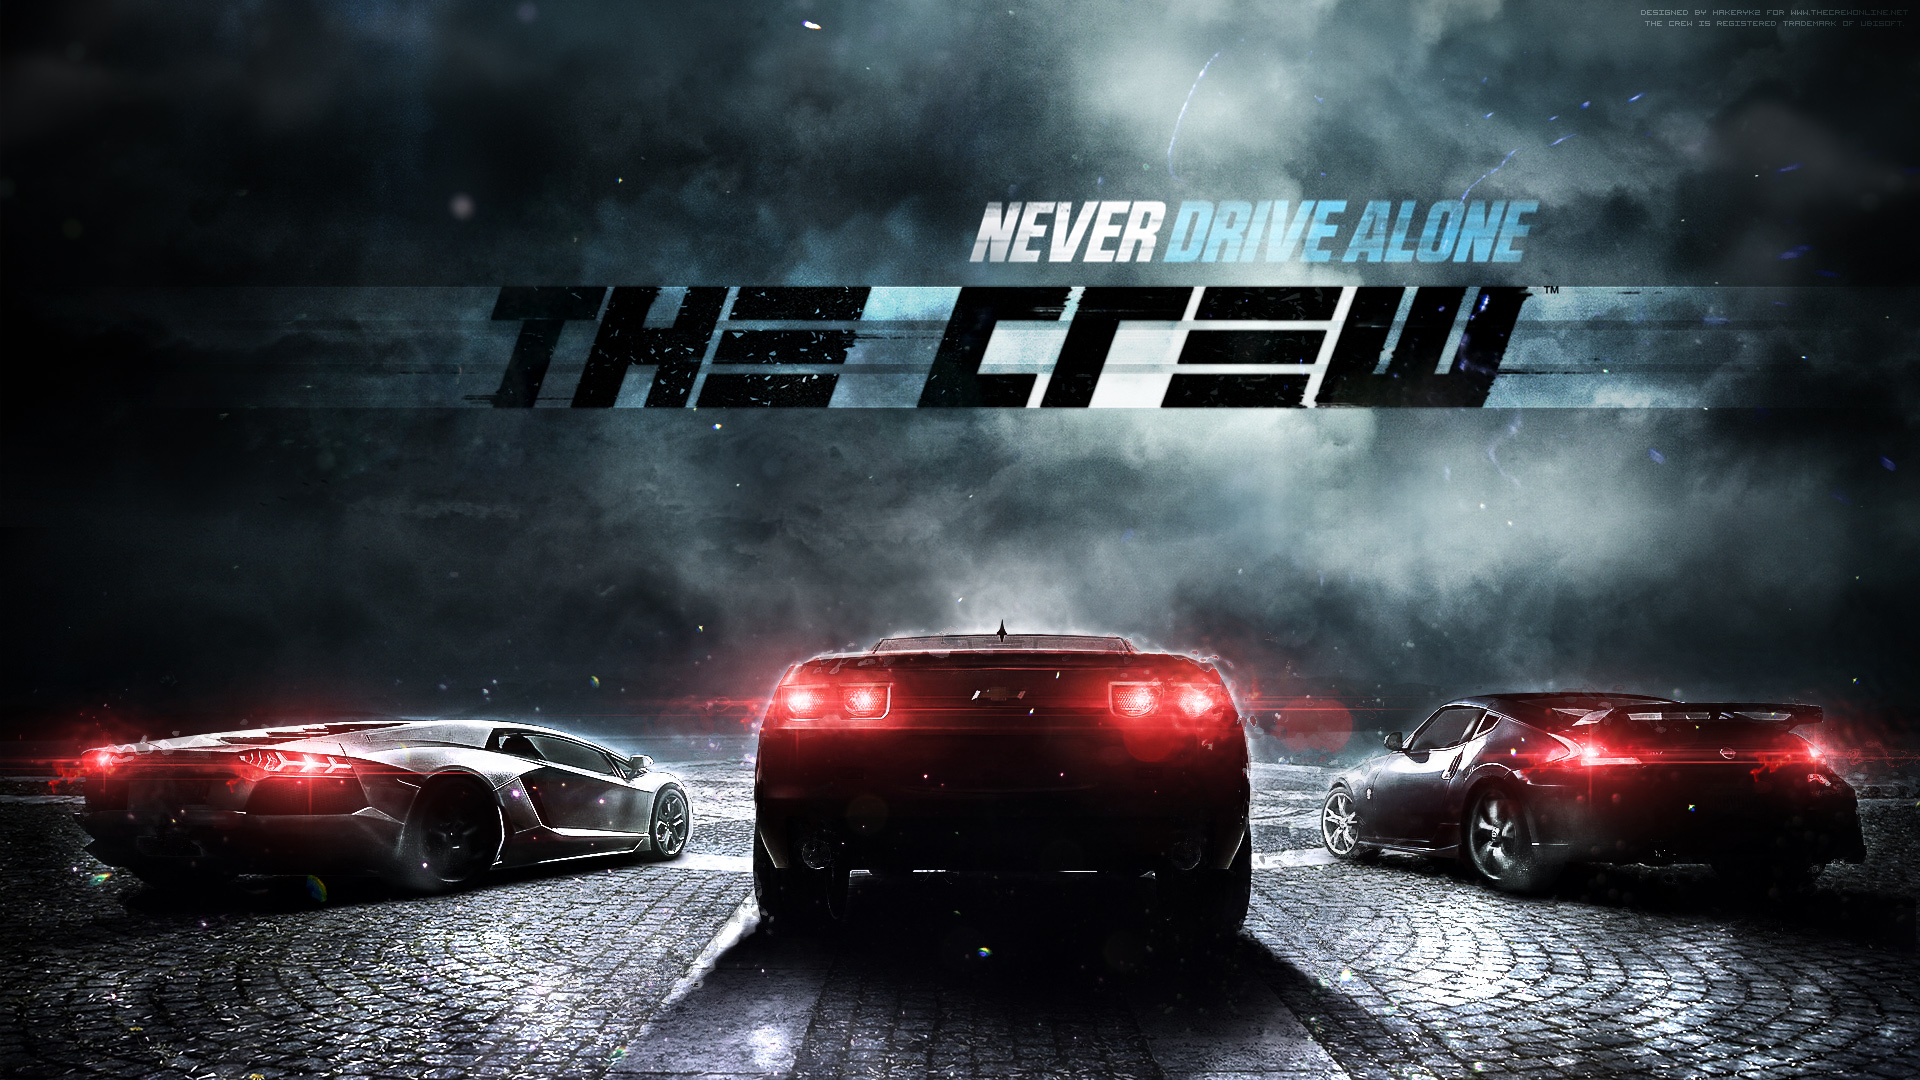 Explore More Wallpapers in the The Crew Subcategory!